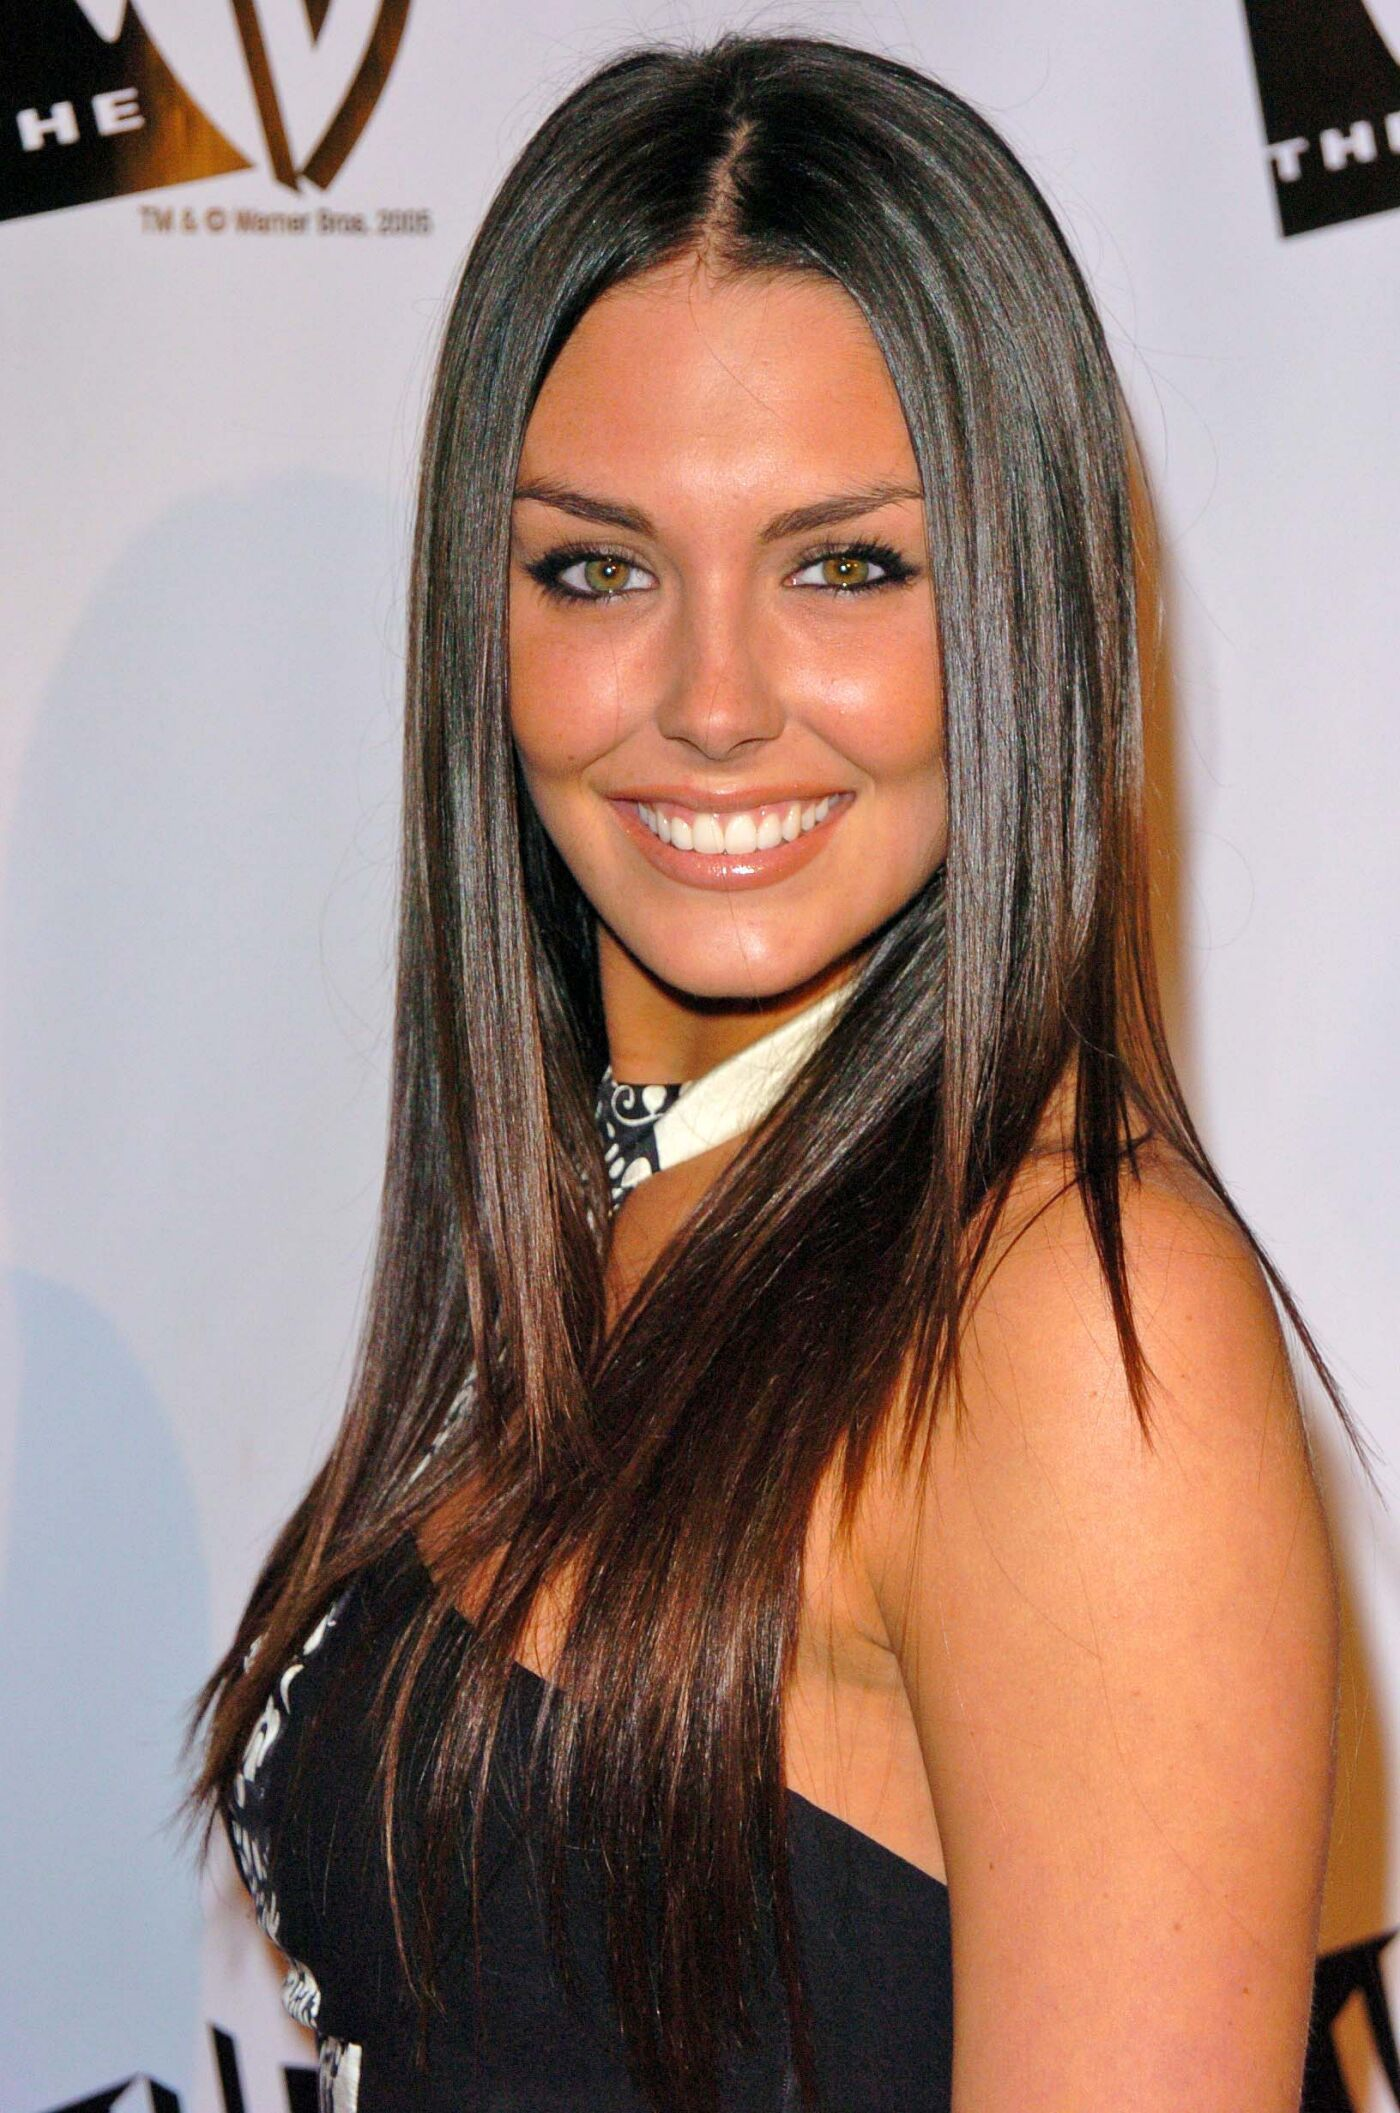 taylor cole instagramtaylor cole часы, taylor cole instagram, taylor cole watch, taylor cole the originals, taylor cole часы отзывы, taylor cole photo, taylor cole uhren, taylor cole fan, taylor cole zegarek, taylor cole watches prices, taylor cole watches, taylor cole supernatural, taylor cole tamworth